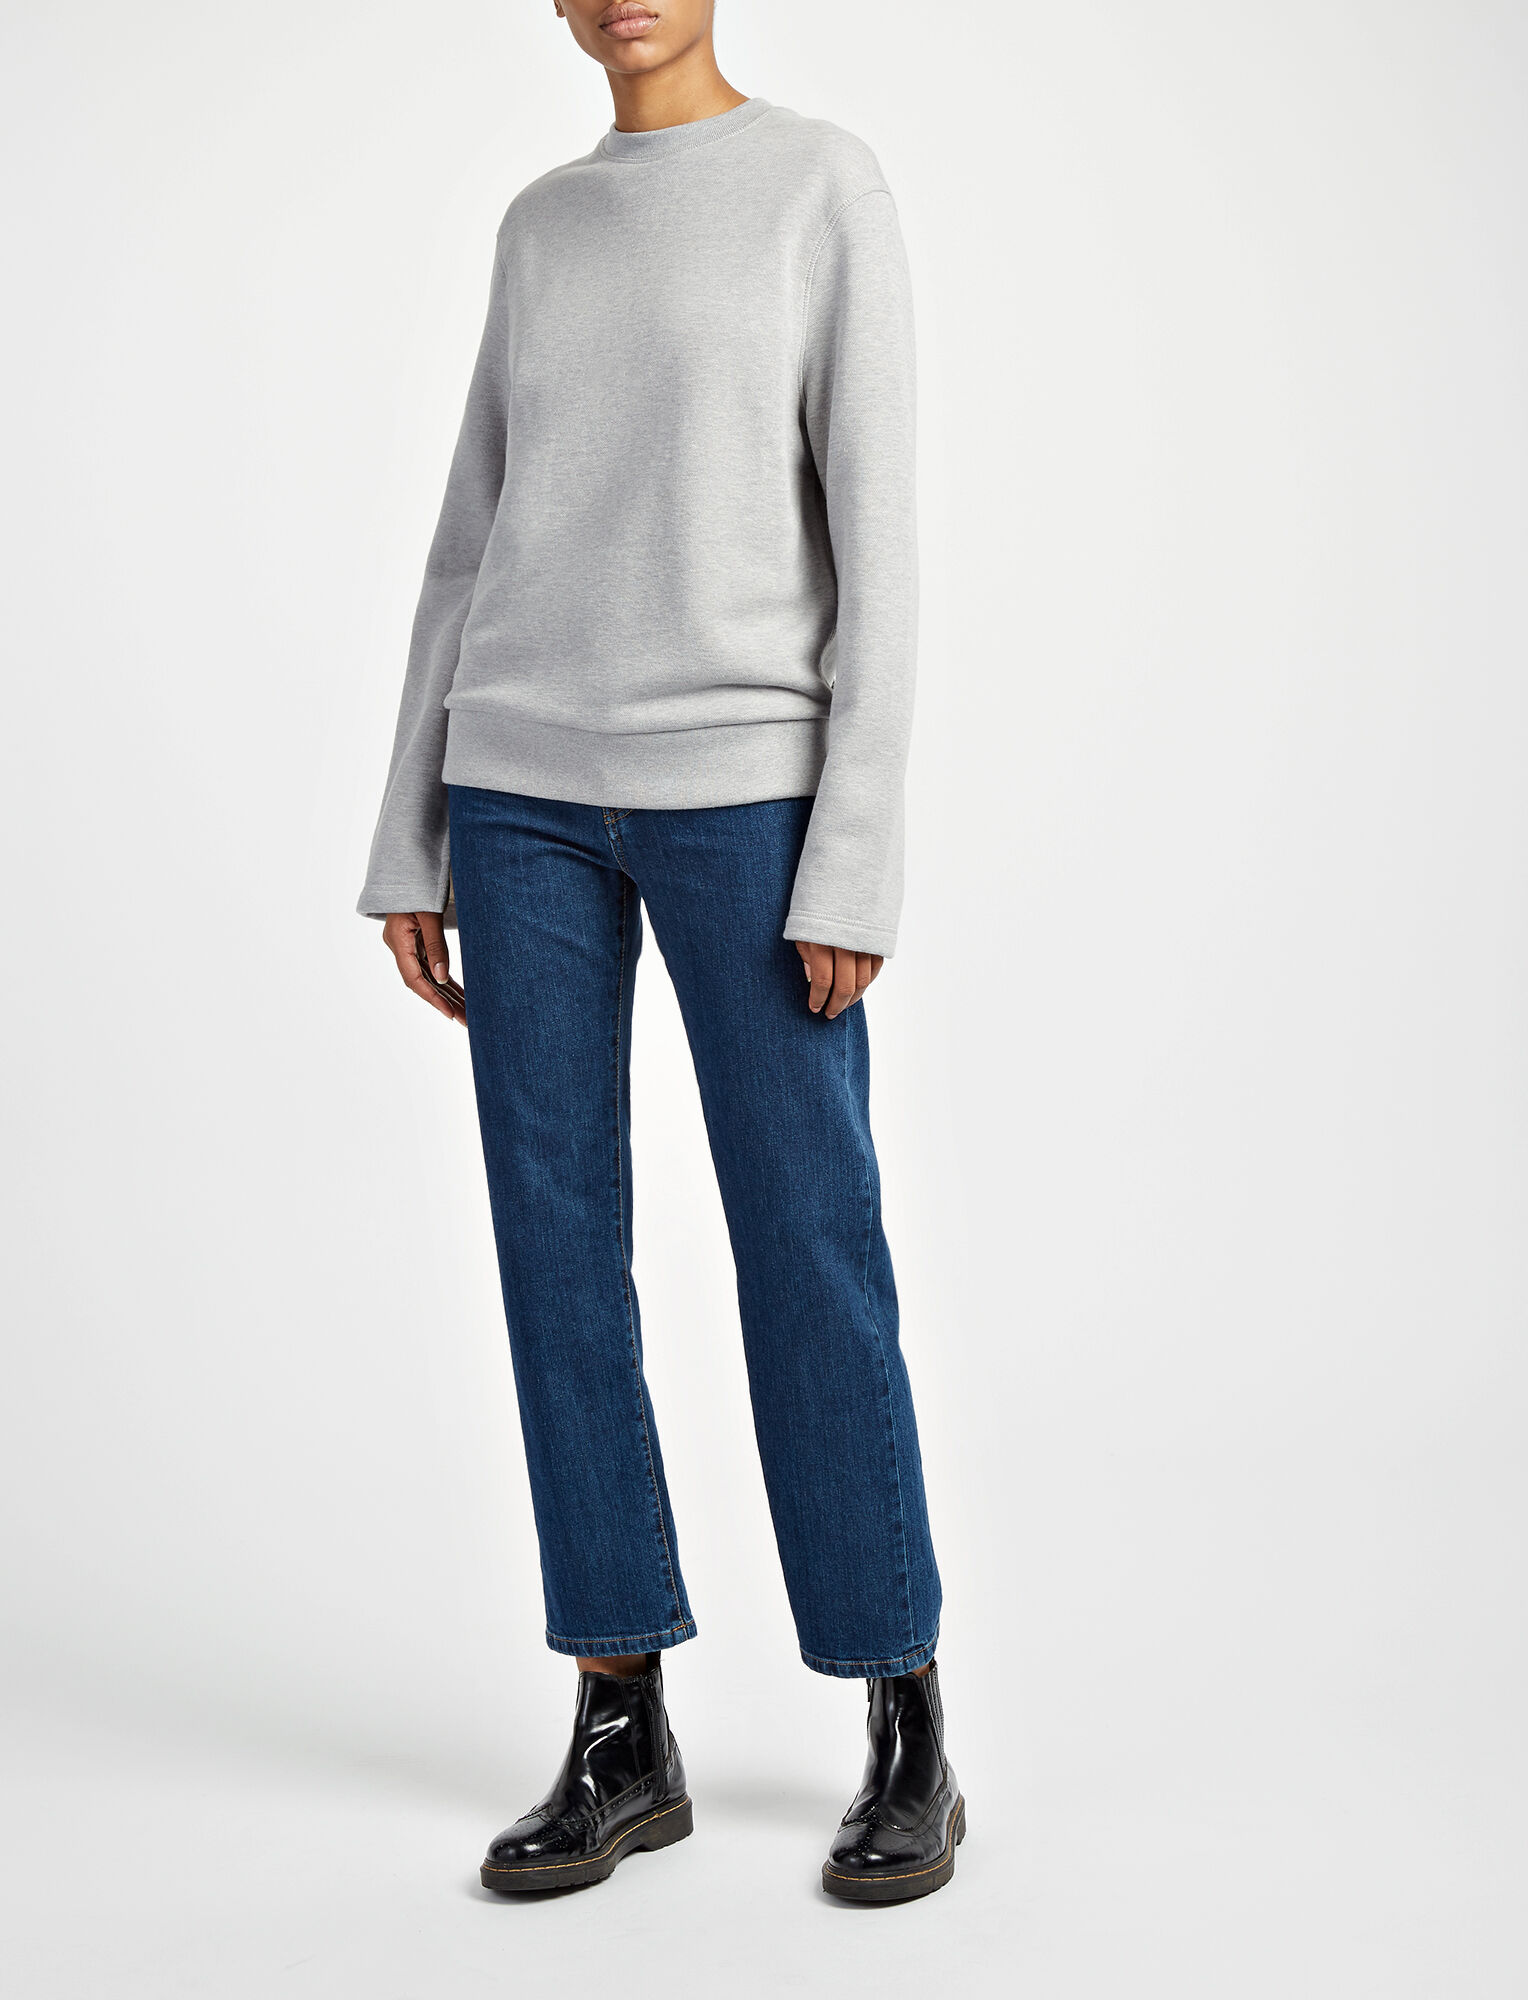 Loop Back Knot Sweater, in CONCRETE, large | on Joseph